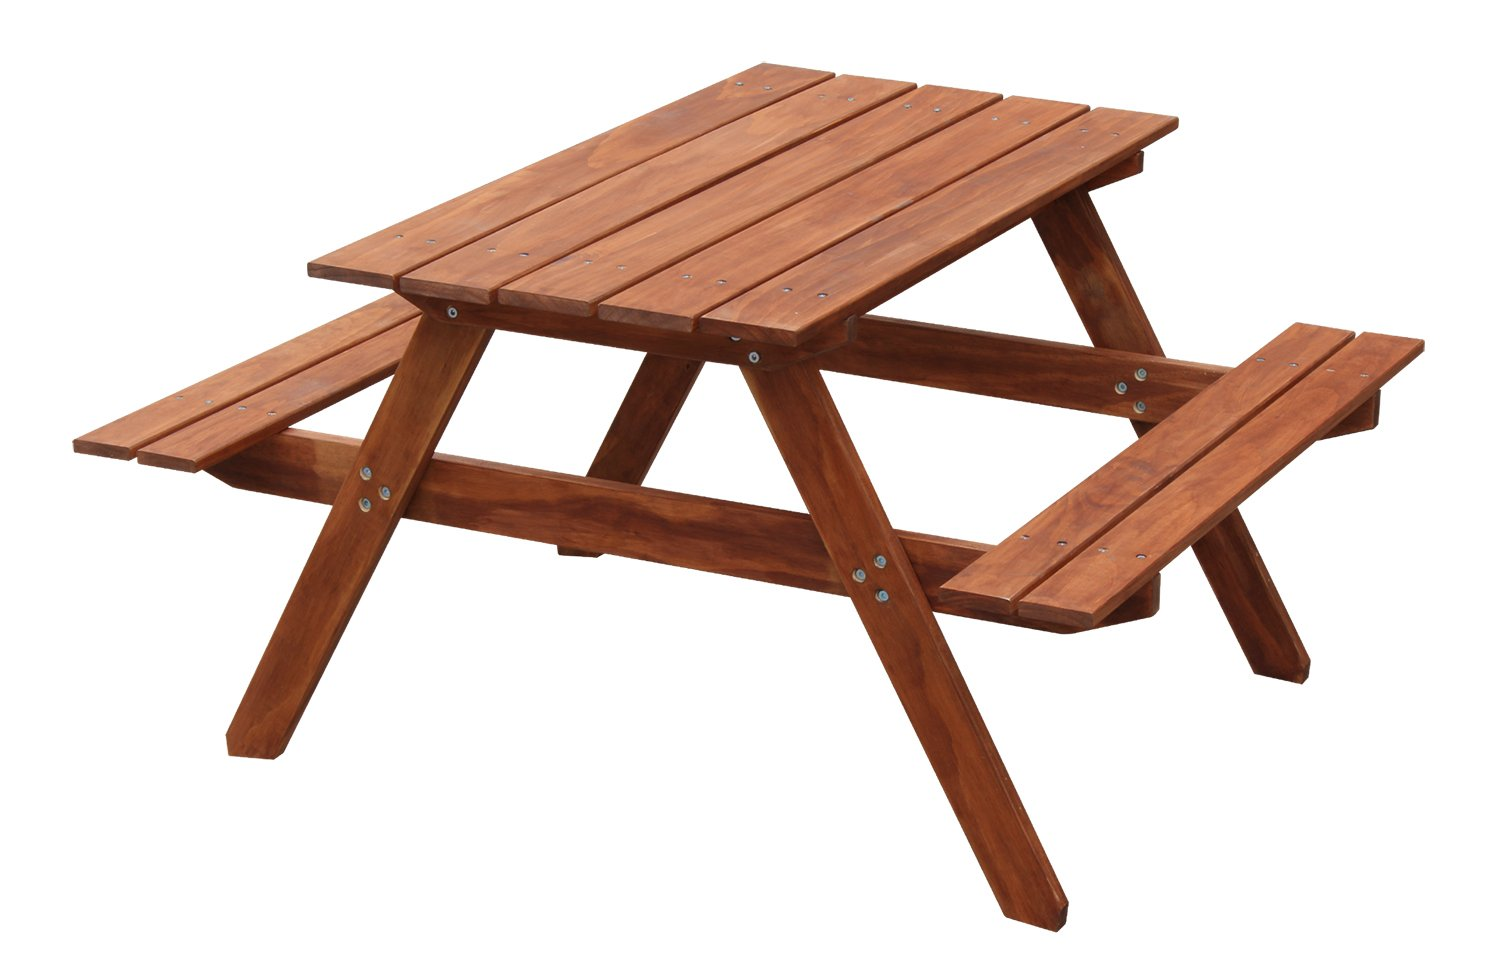 Amazon.com: Maxim Wooden Kids Picnic Table with Benches ...